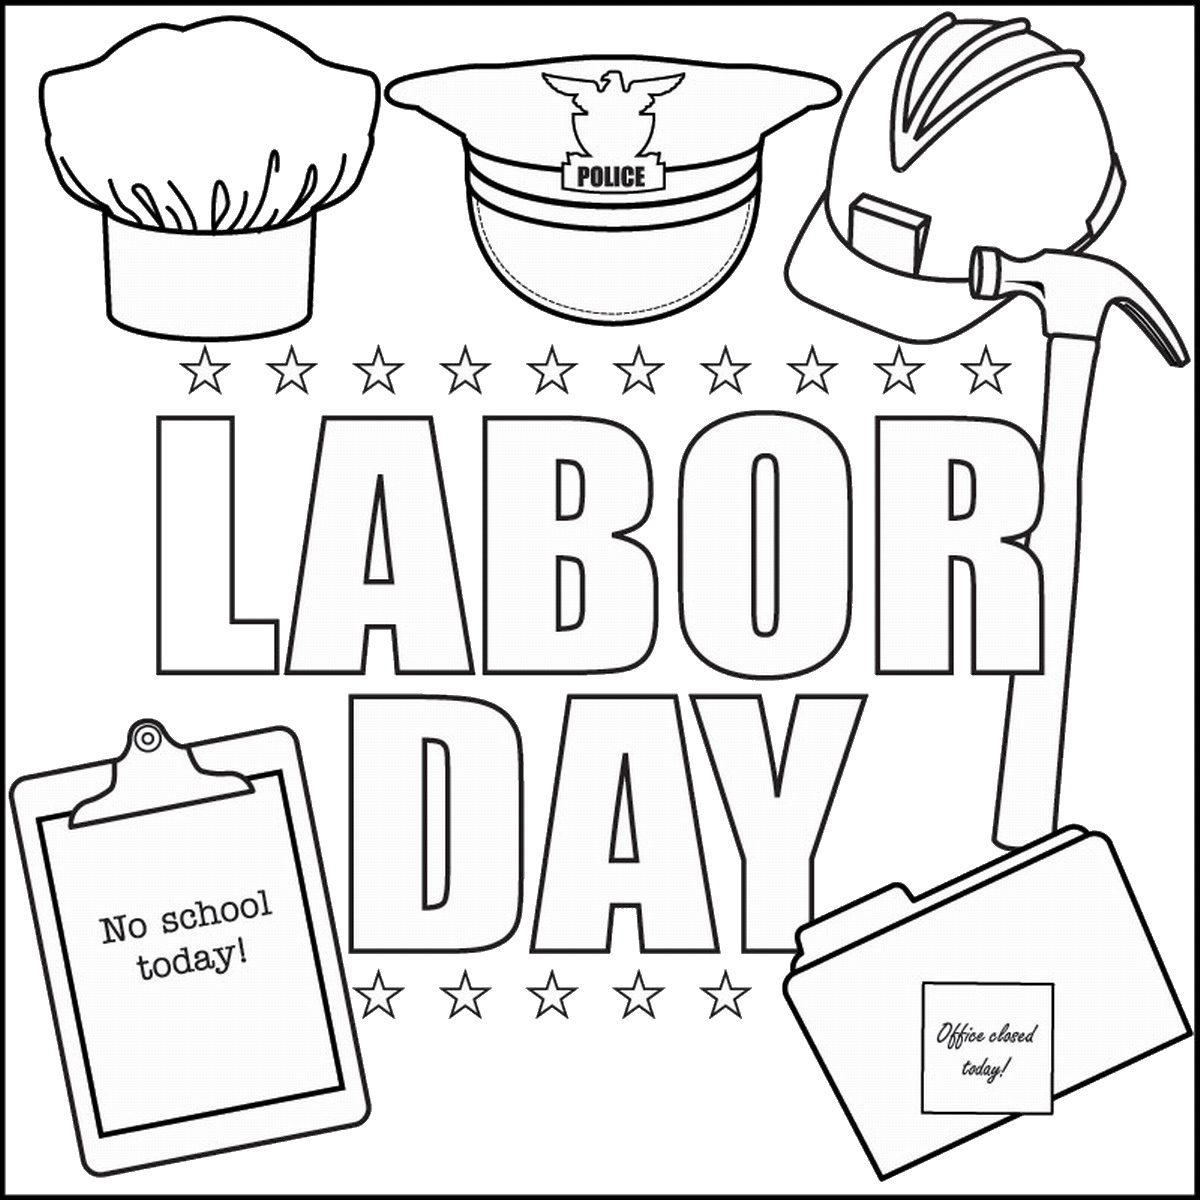 Labor day clipart black and white 1 » Clipart Station.